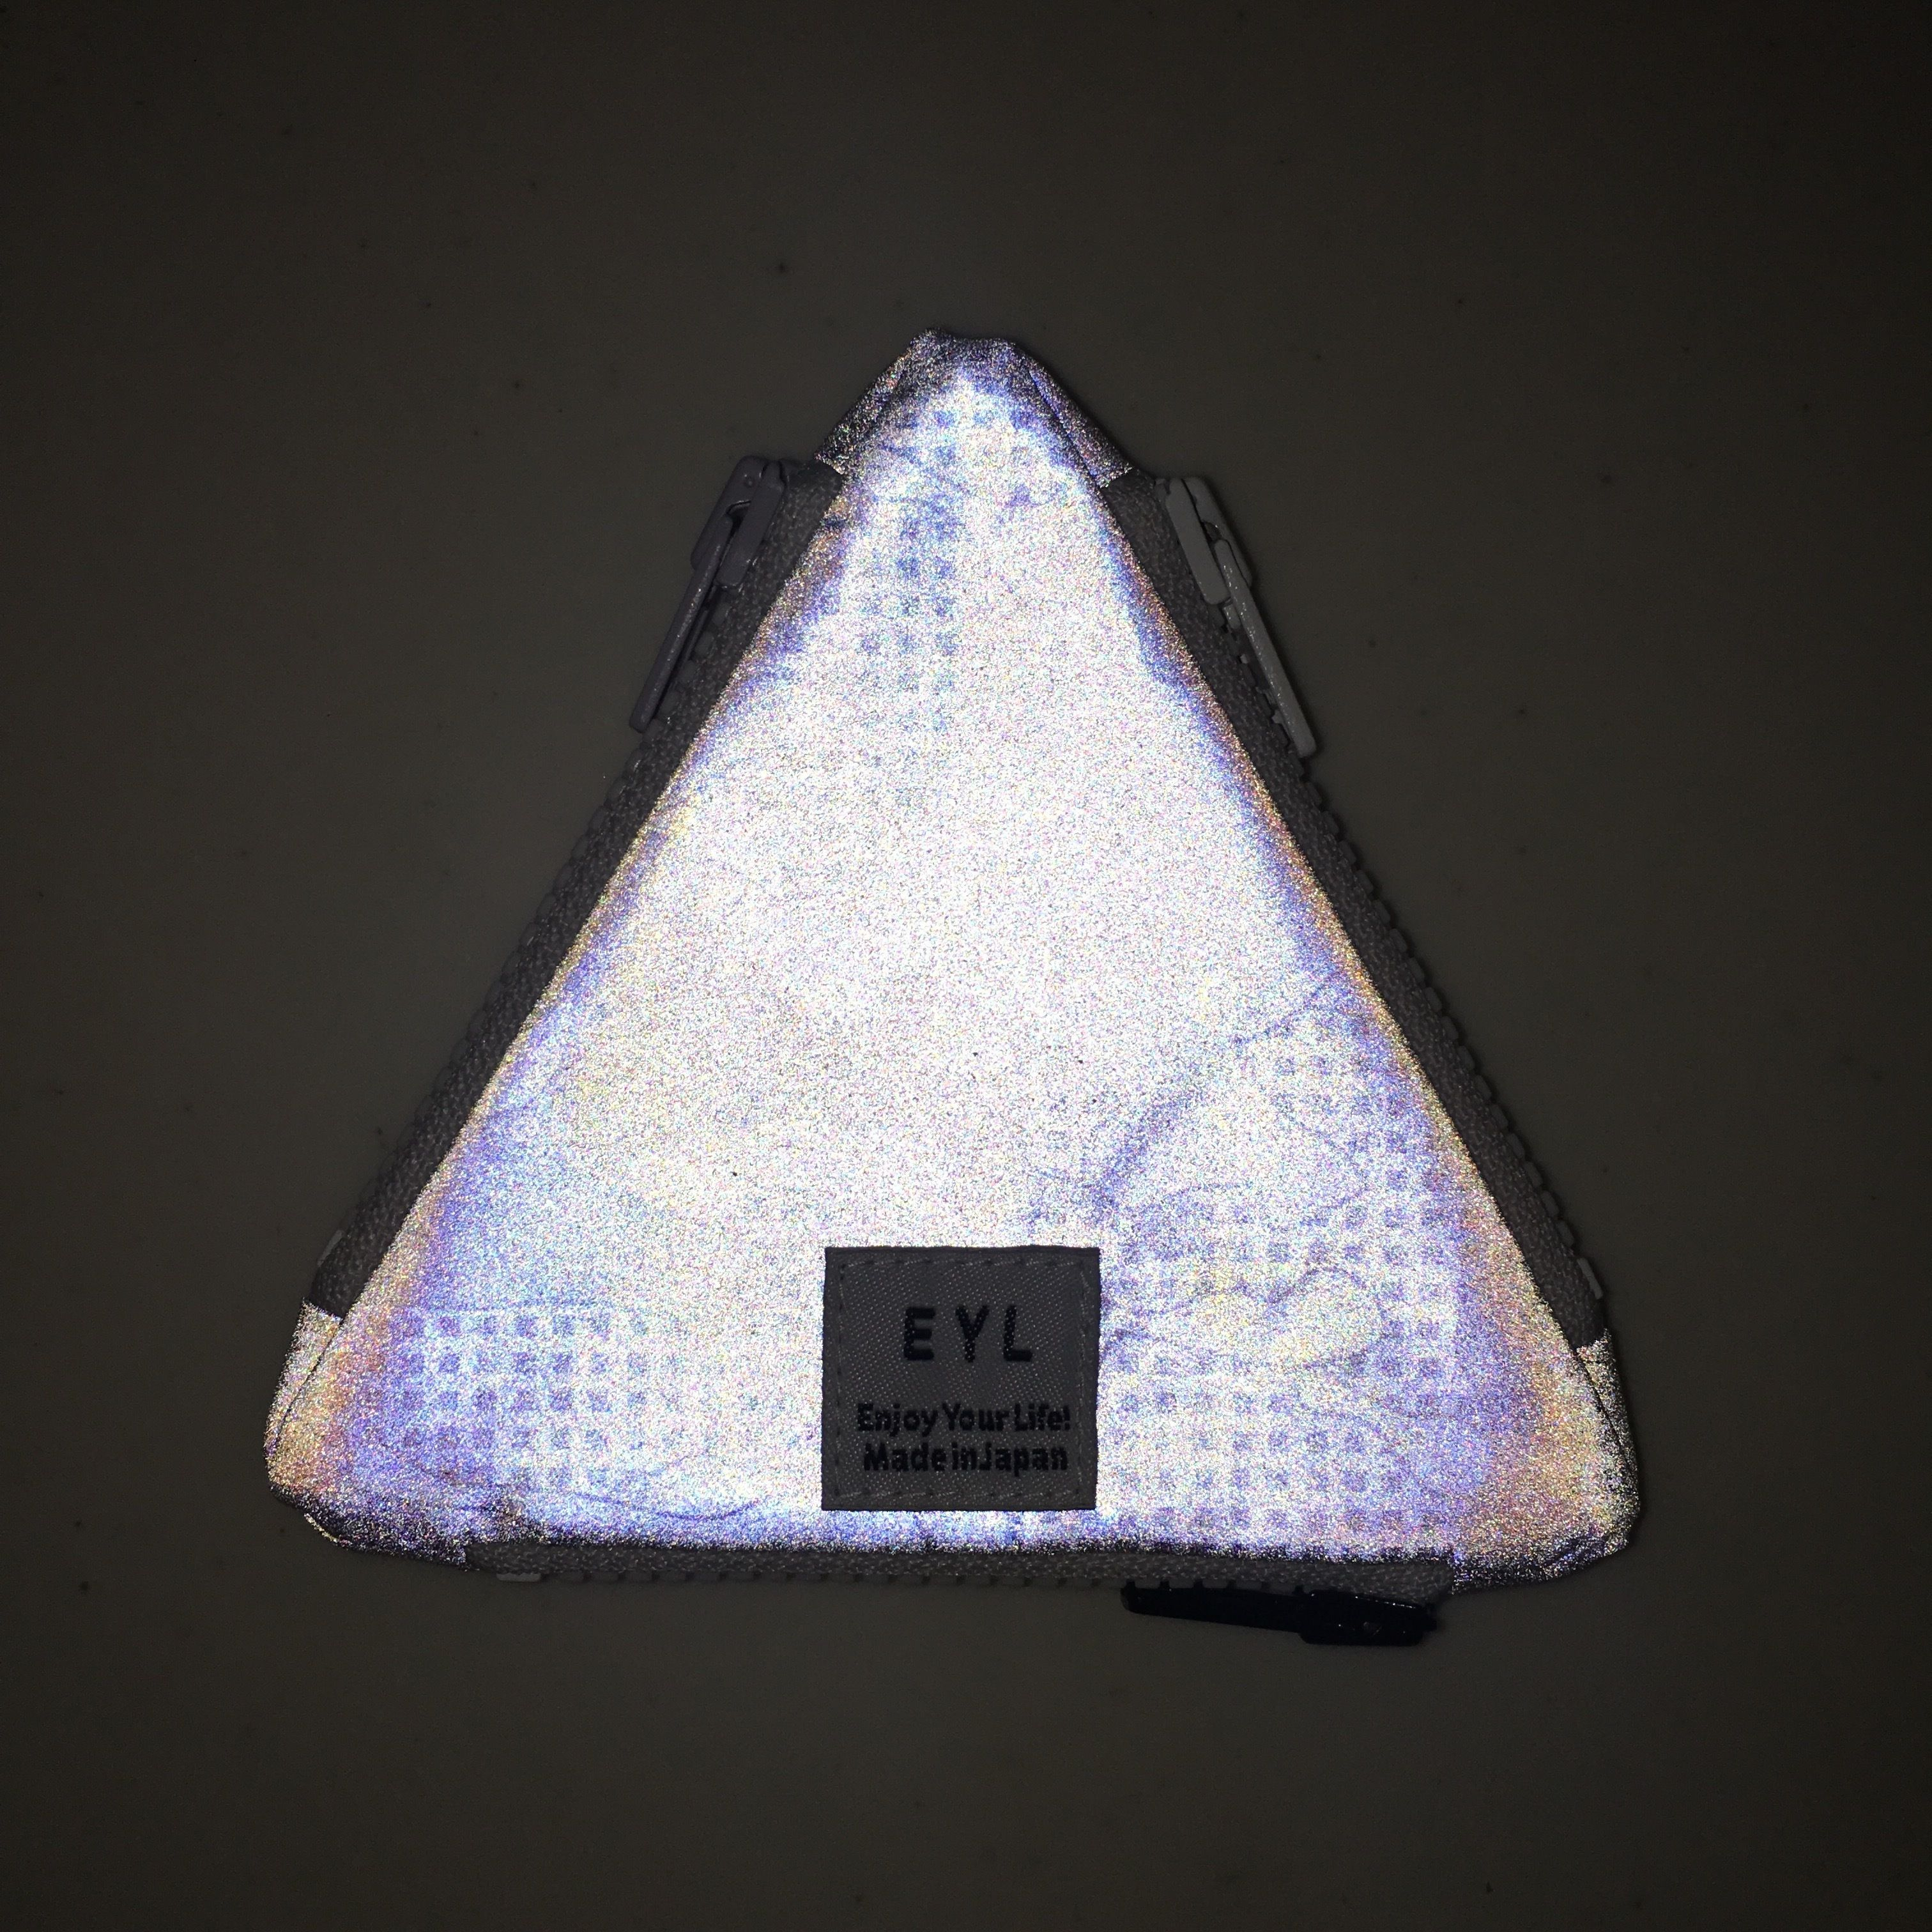 Eyl coin case reflective pack eyl online store - Coin casa shop on line ...